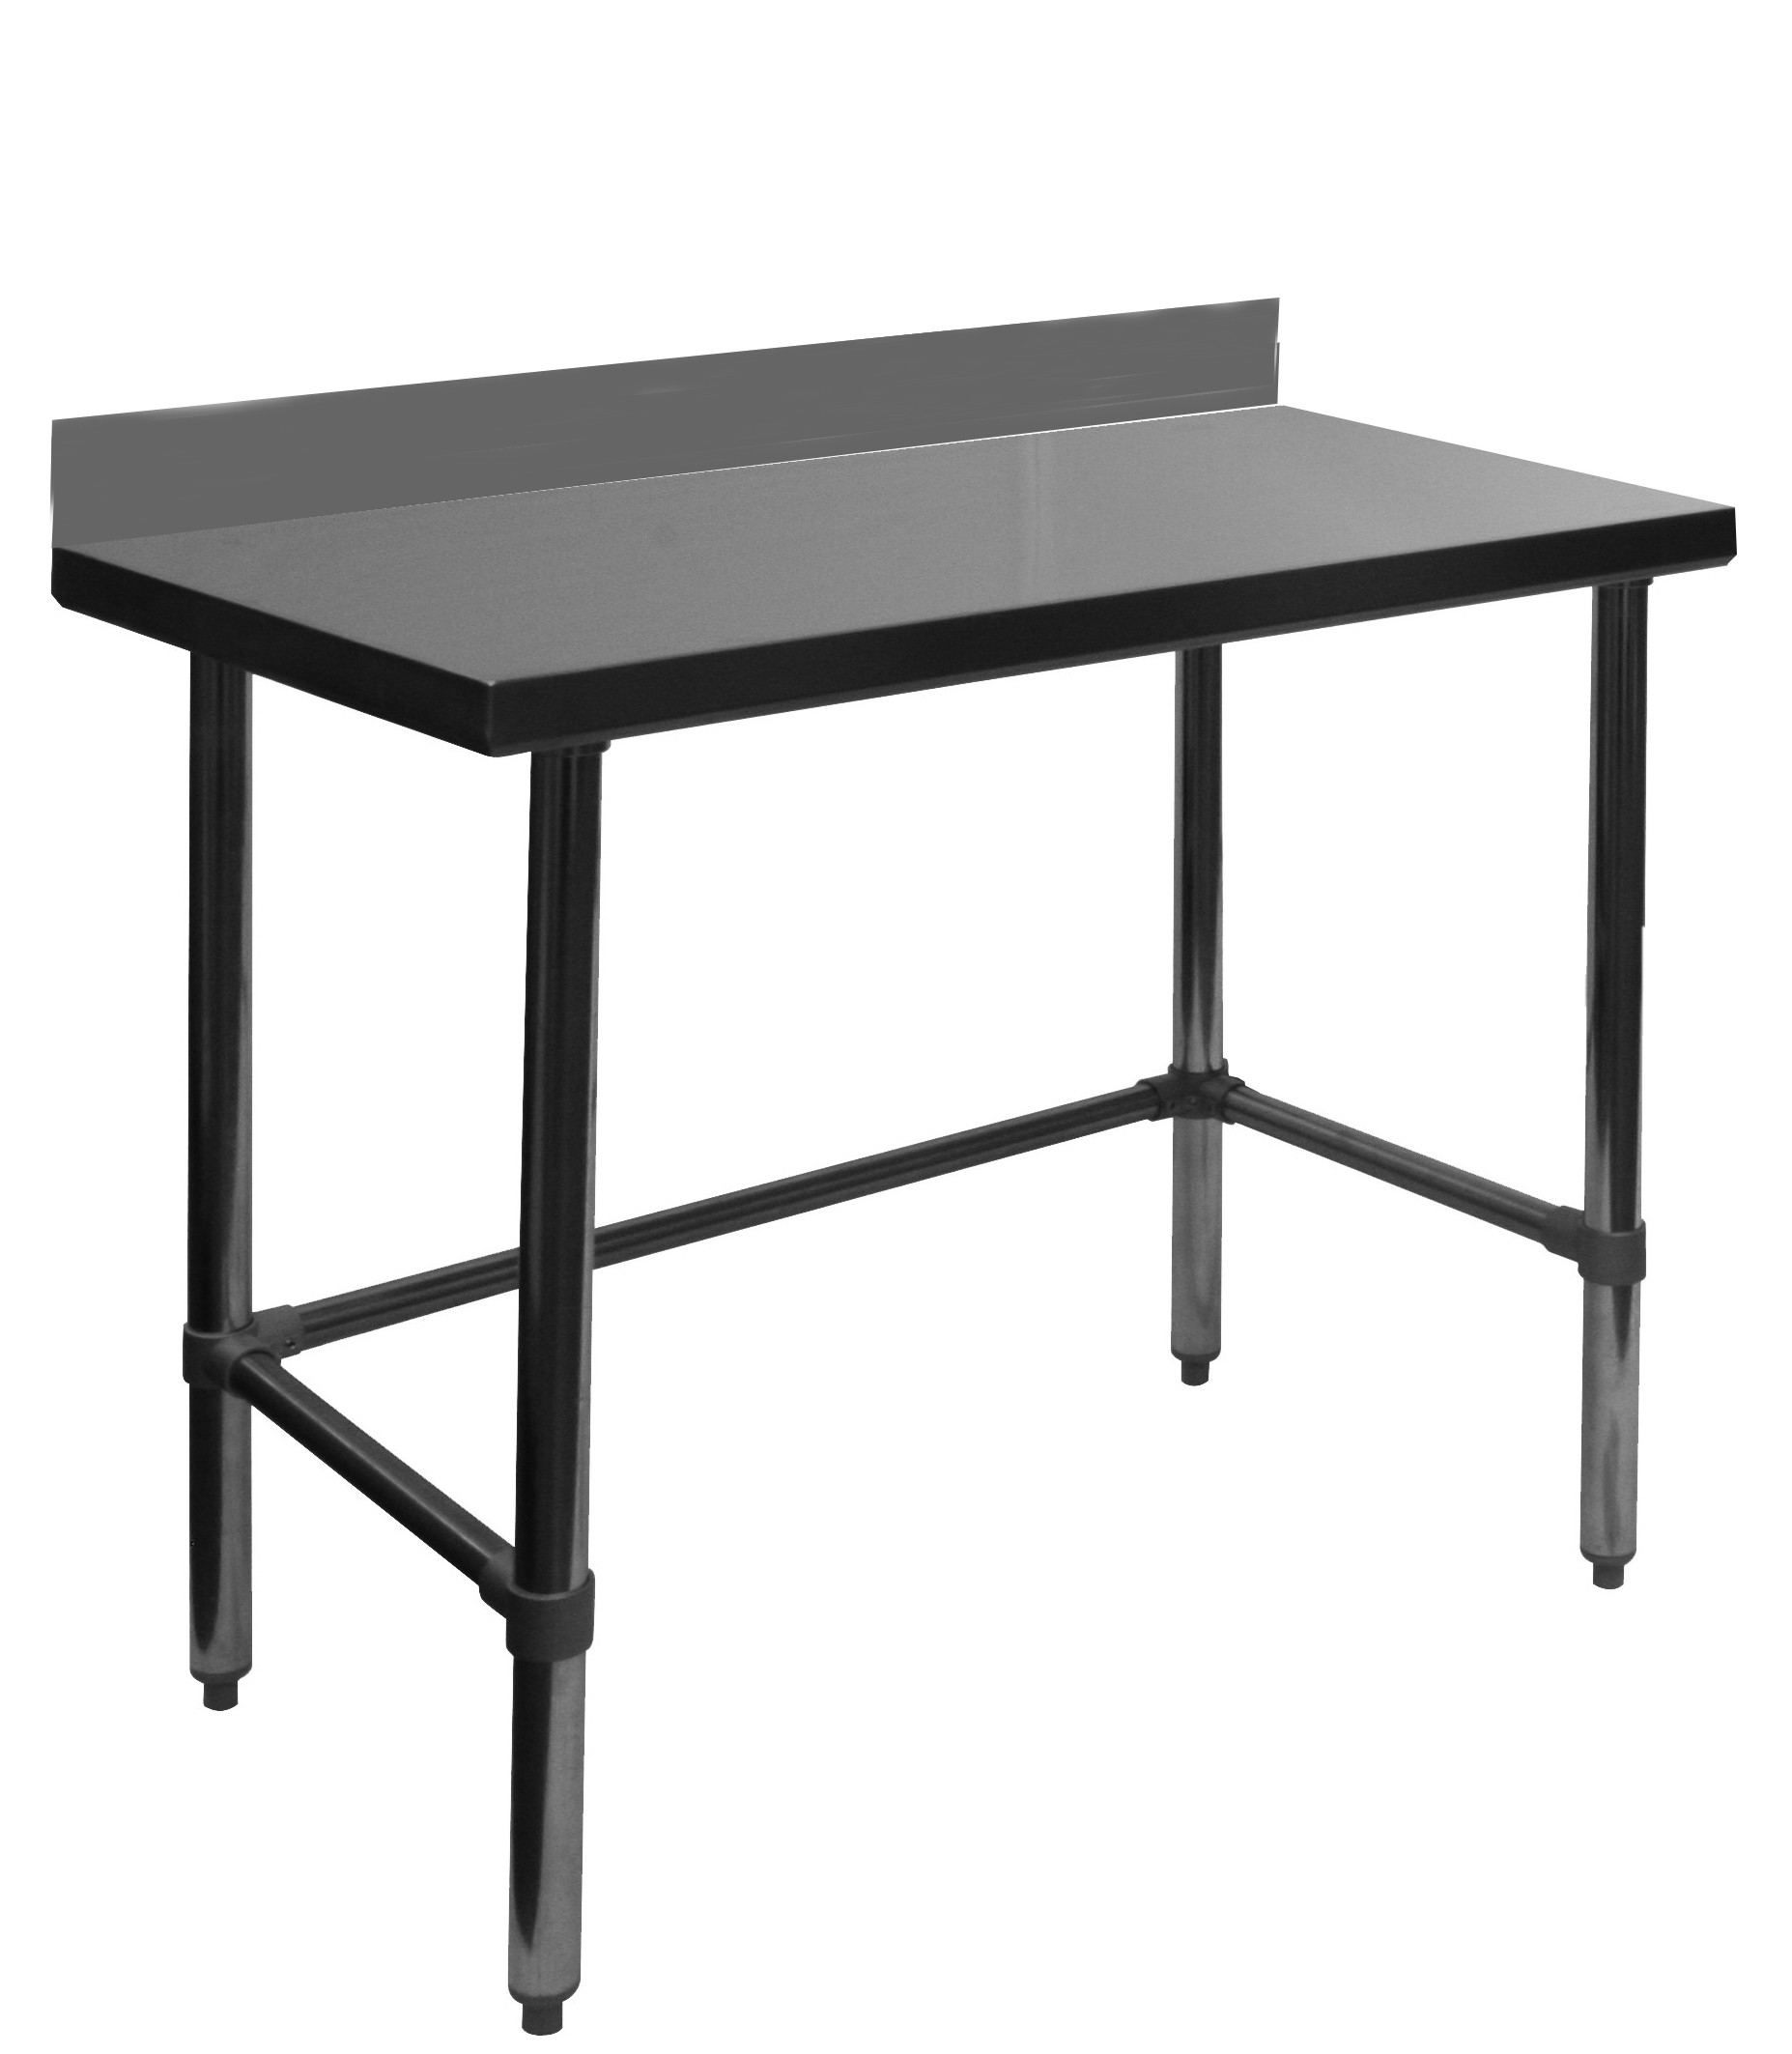 Work Tables GSW - 8 ft stainless steel work table